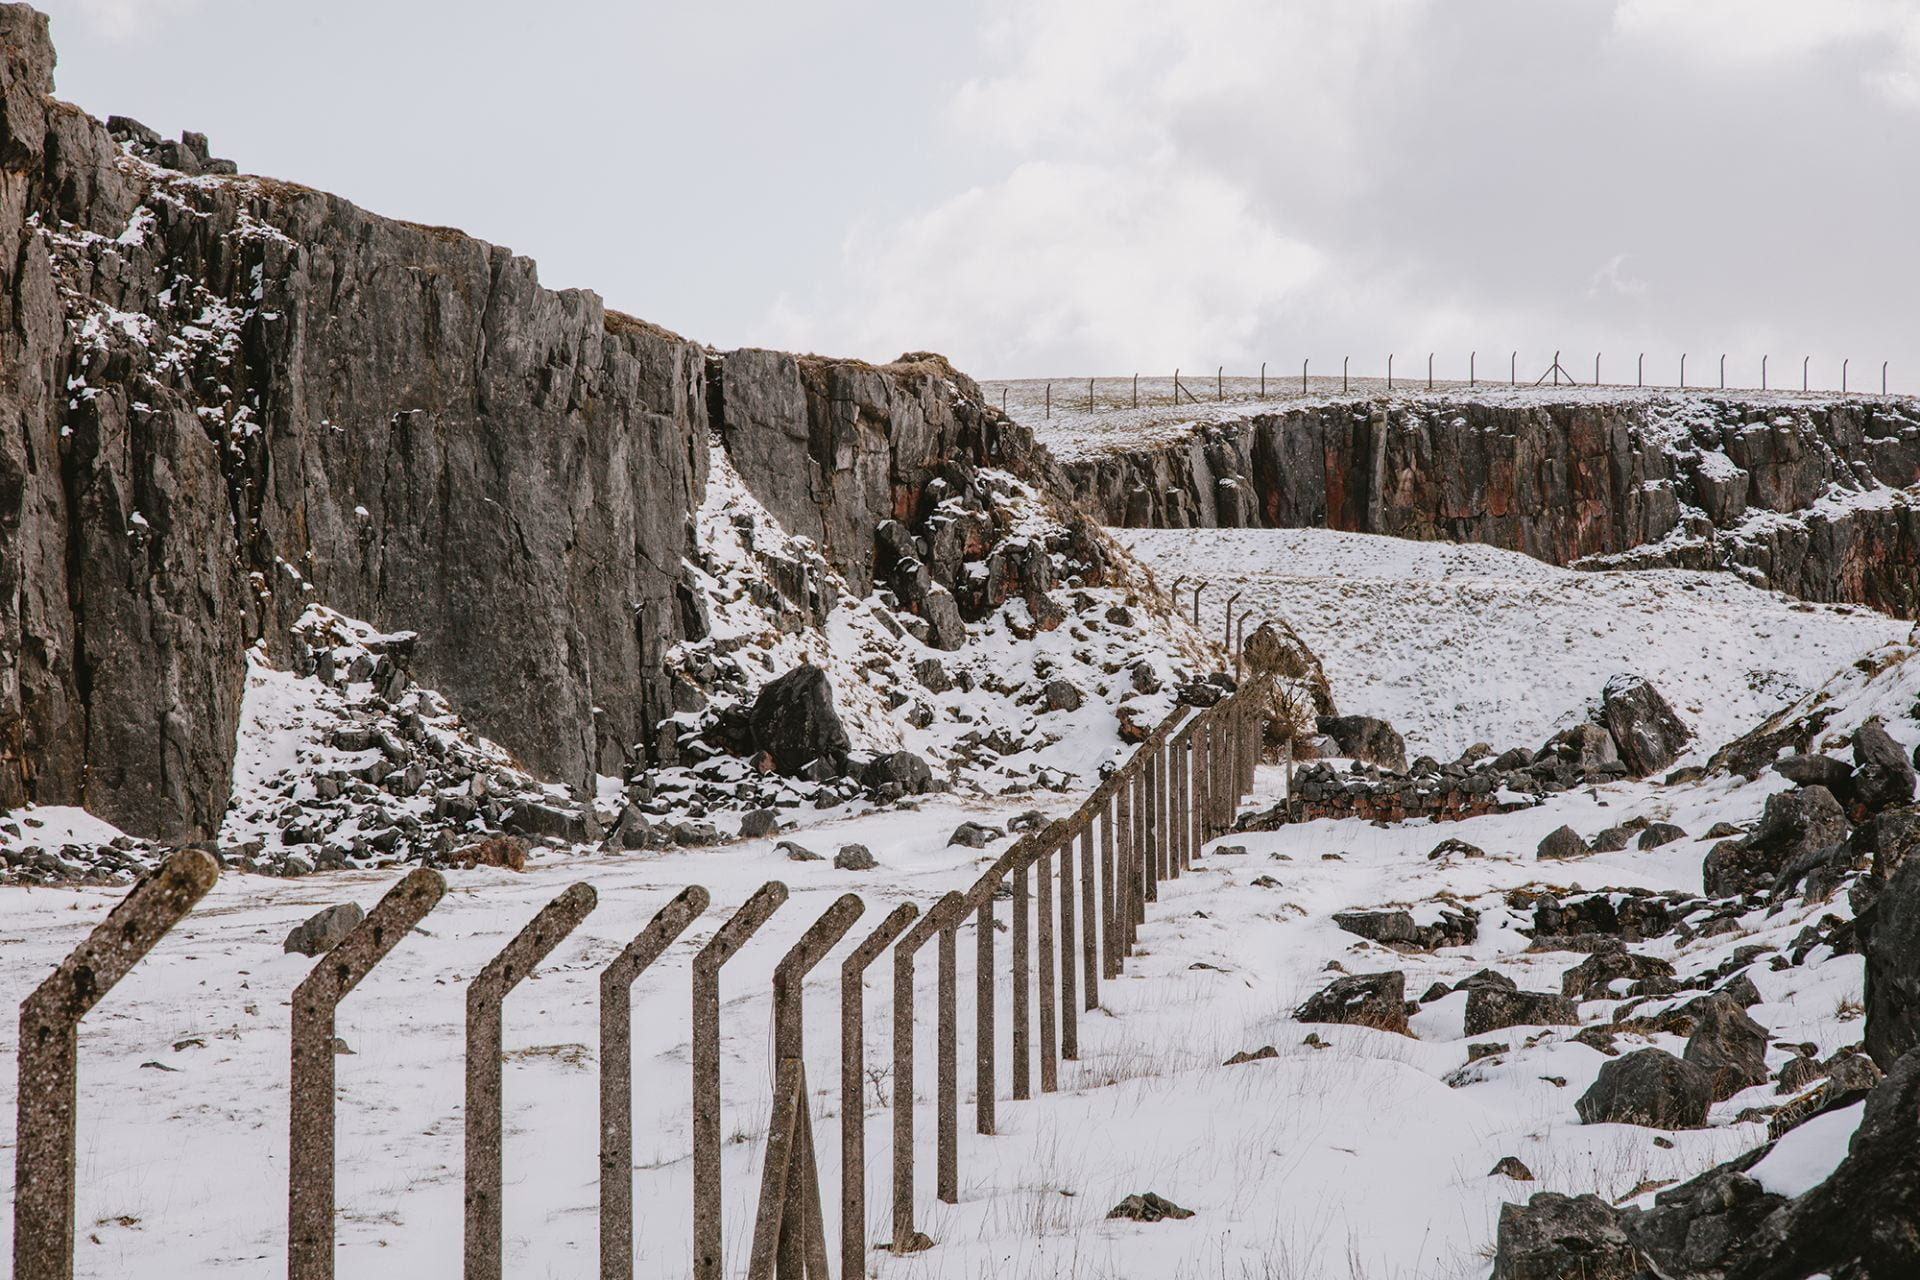 Photography of a quarry in winter.